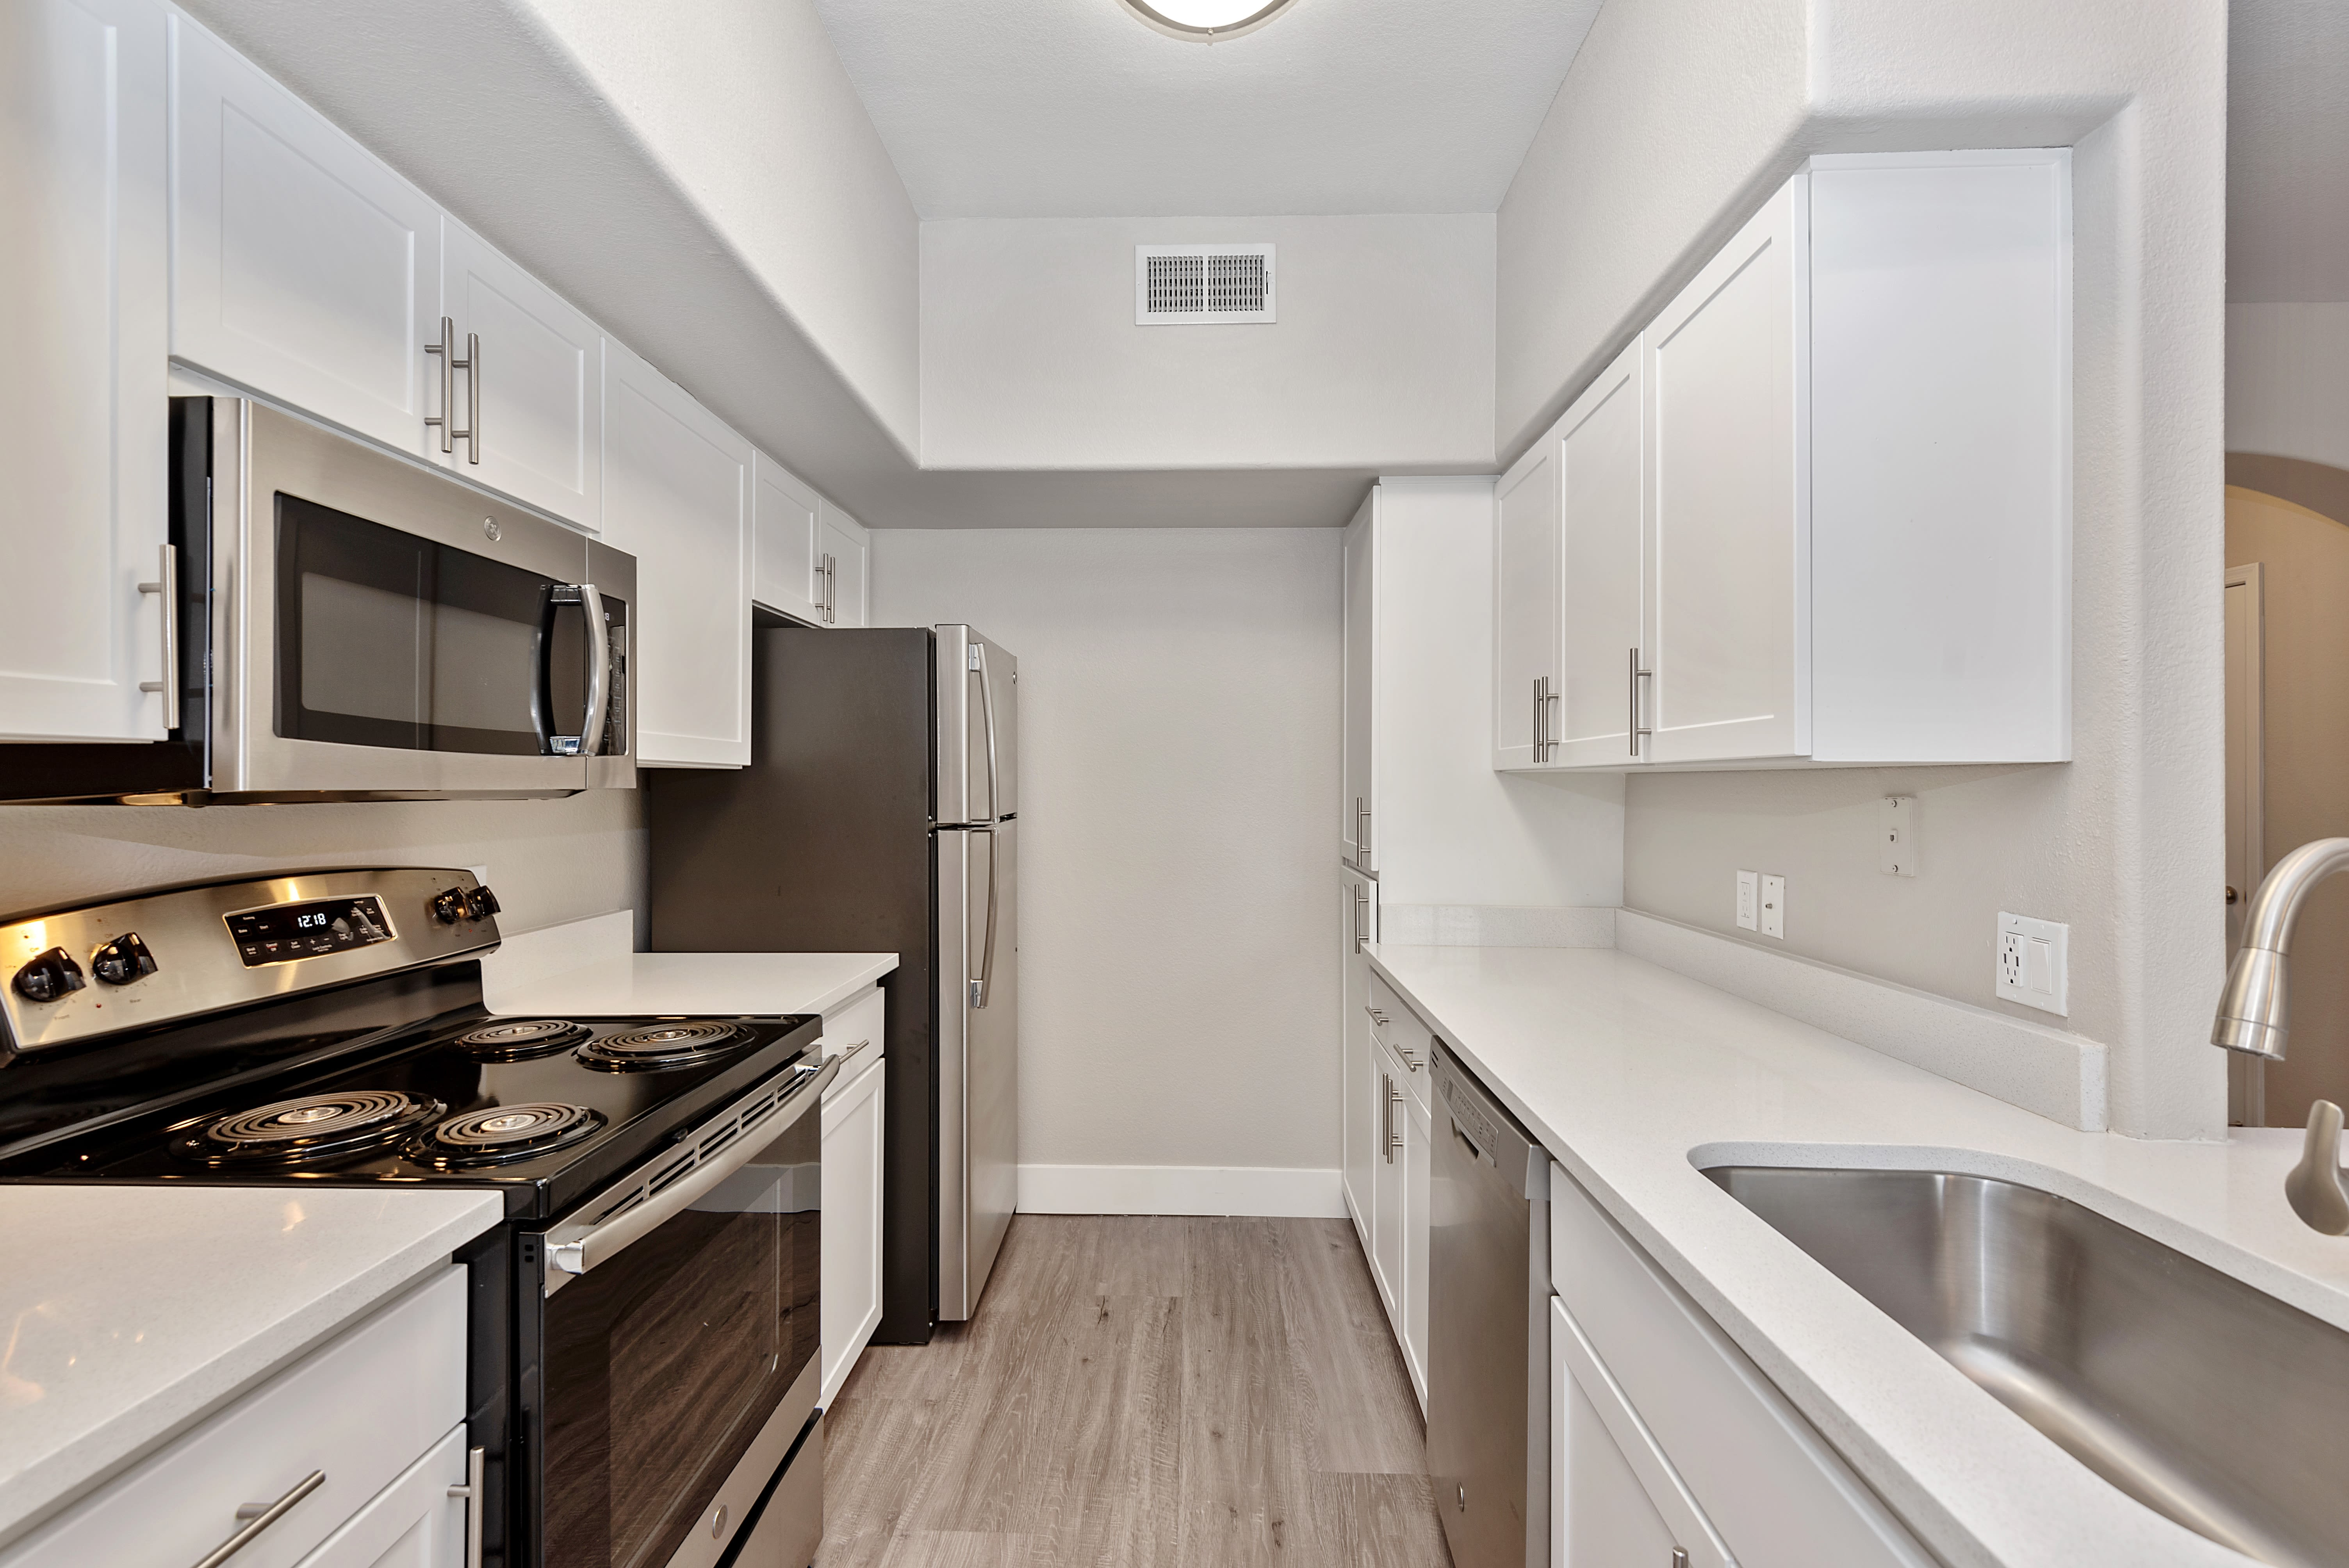 Modern kitchen with hardwood floors at The Retreat Apartments